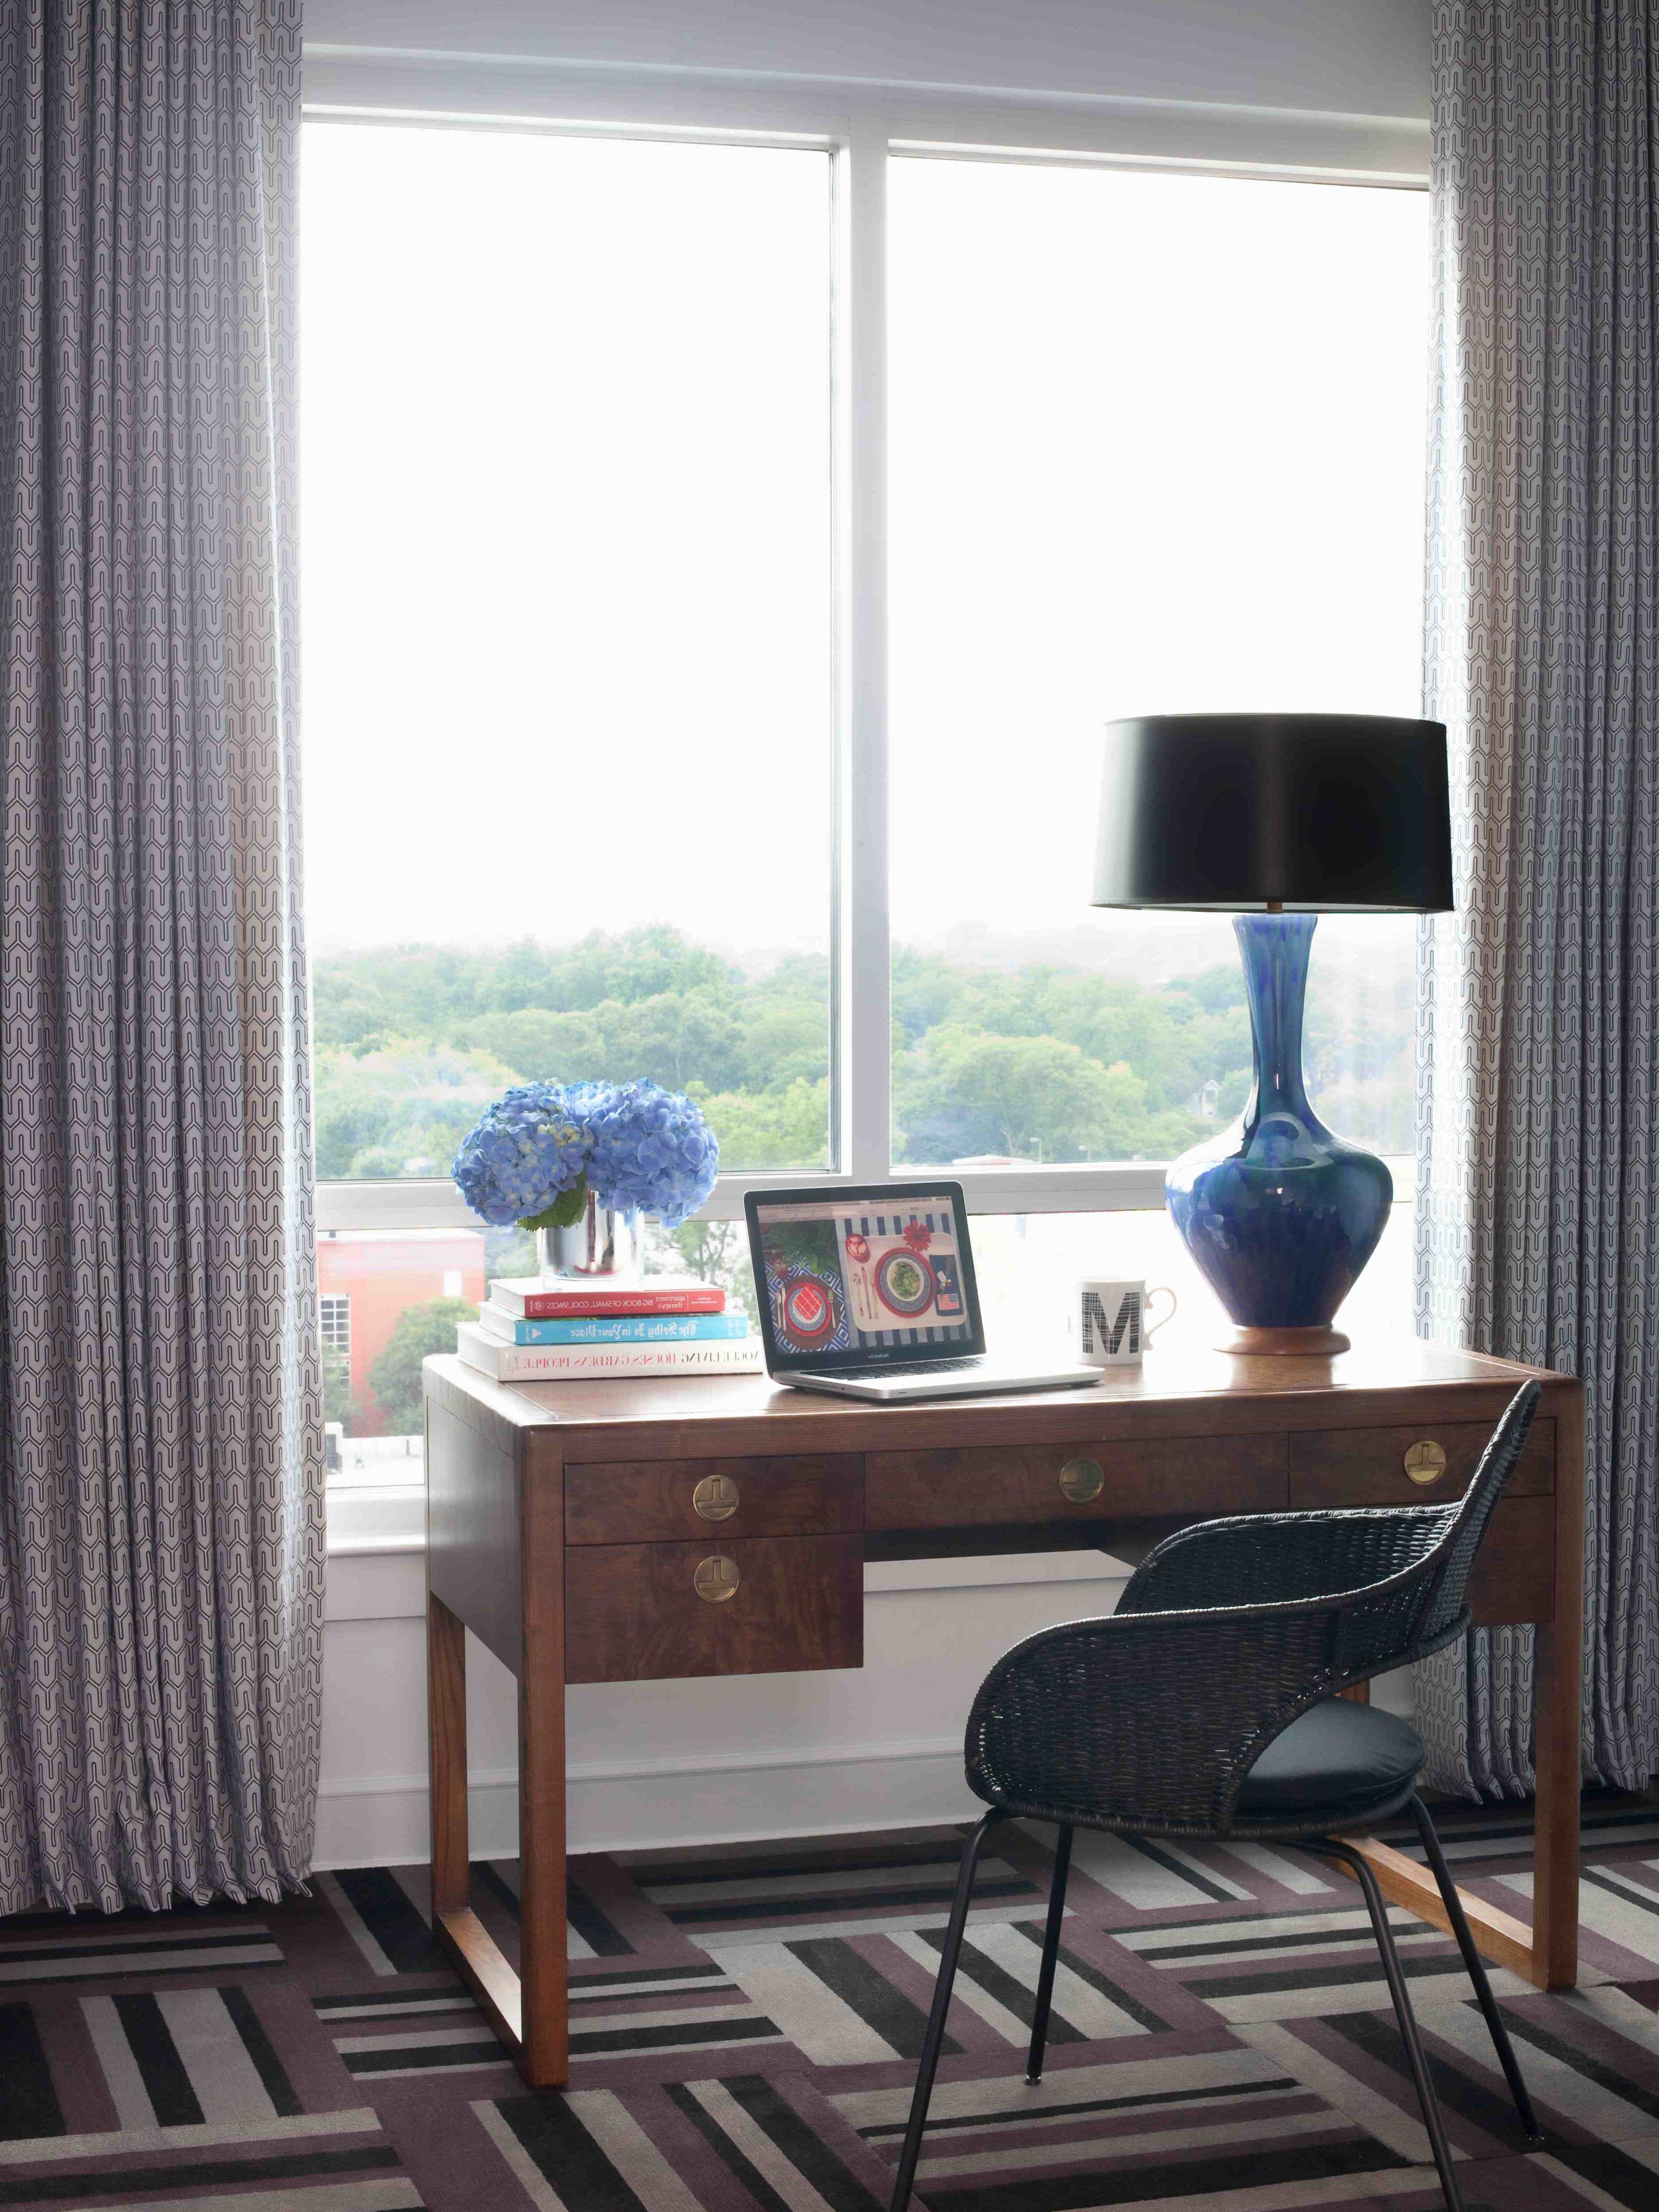 Featured Image of Art Deco Workspace With Funky Blue Lamp And Bold Patterned Rug